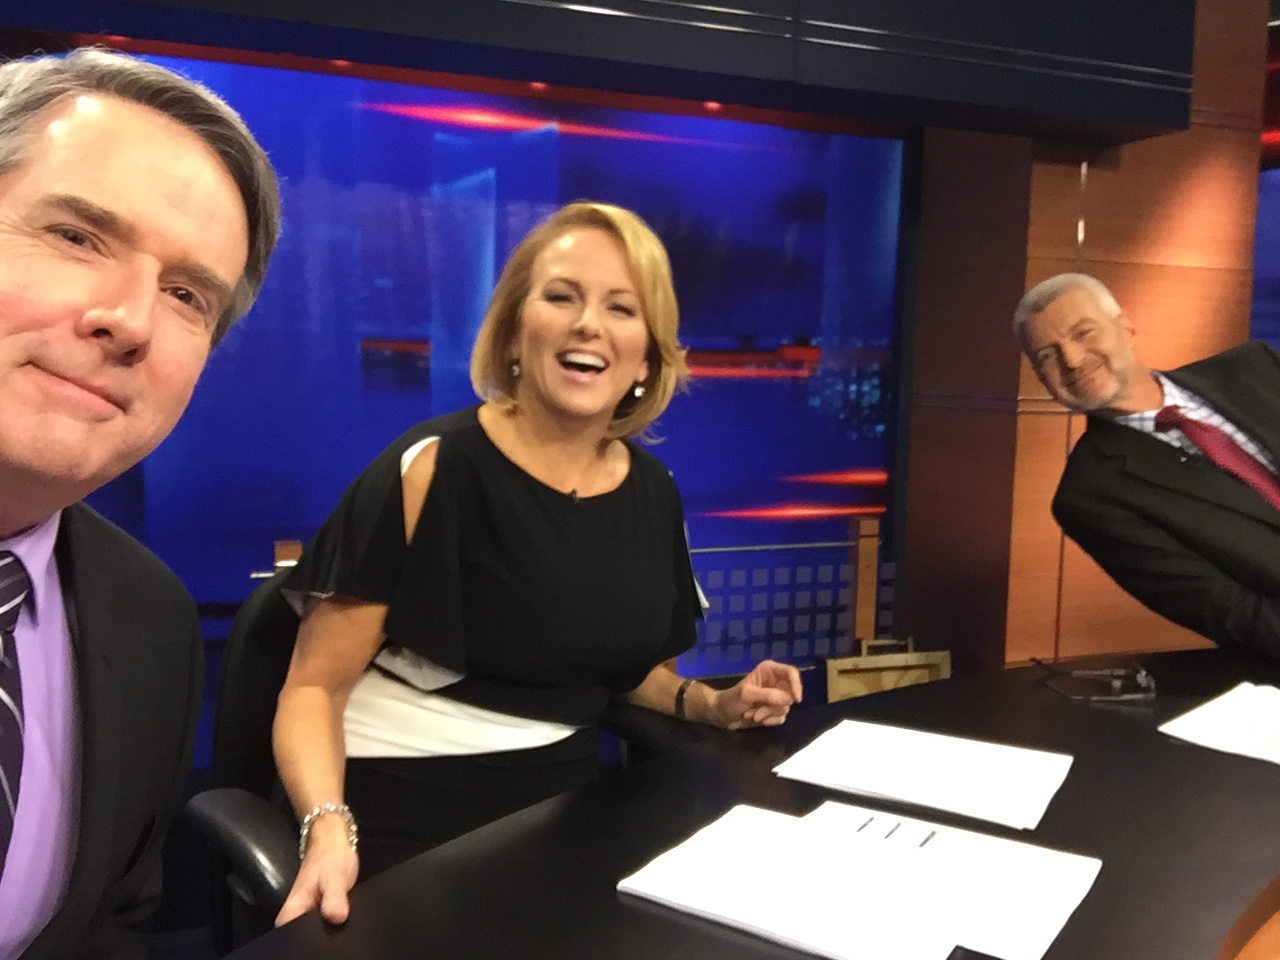 NEWS CENTER strikes a pose for National Selfie Day